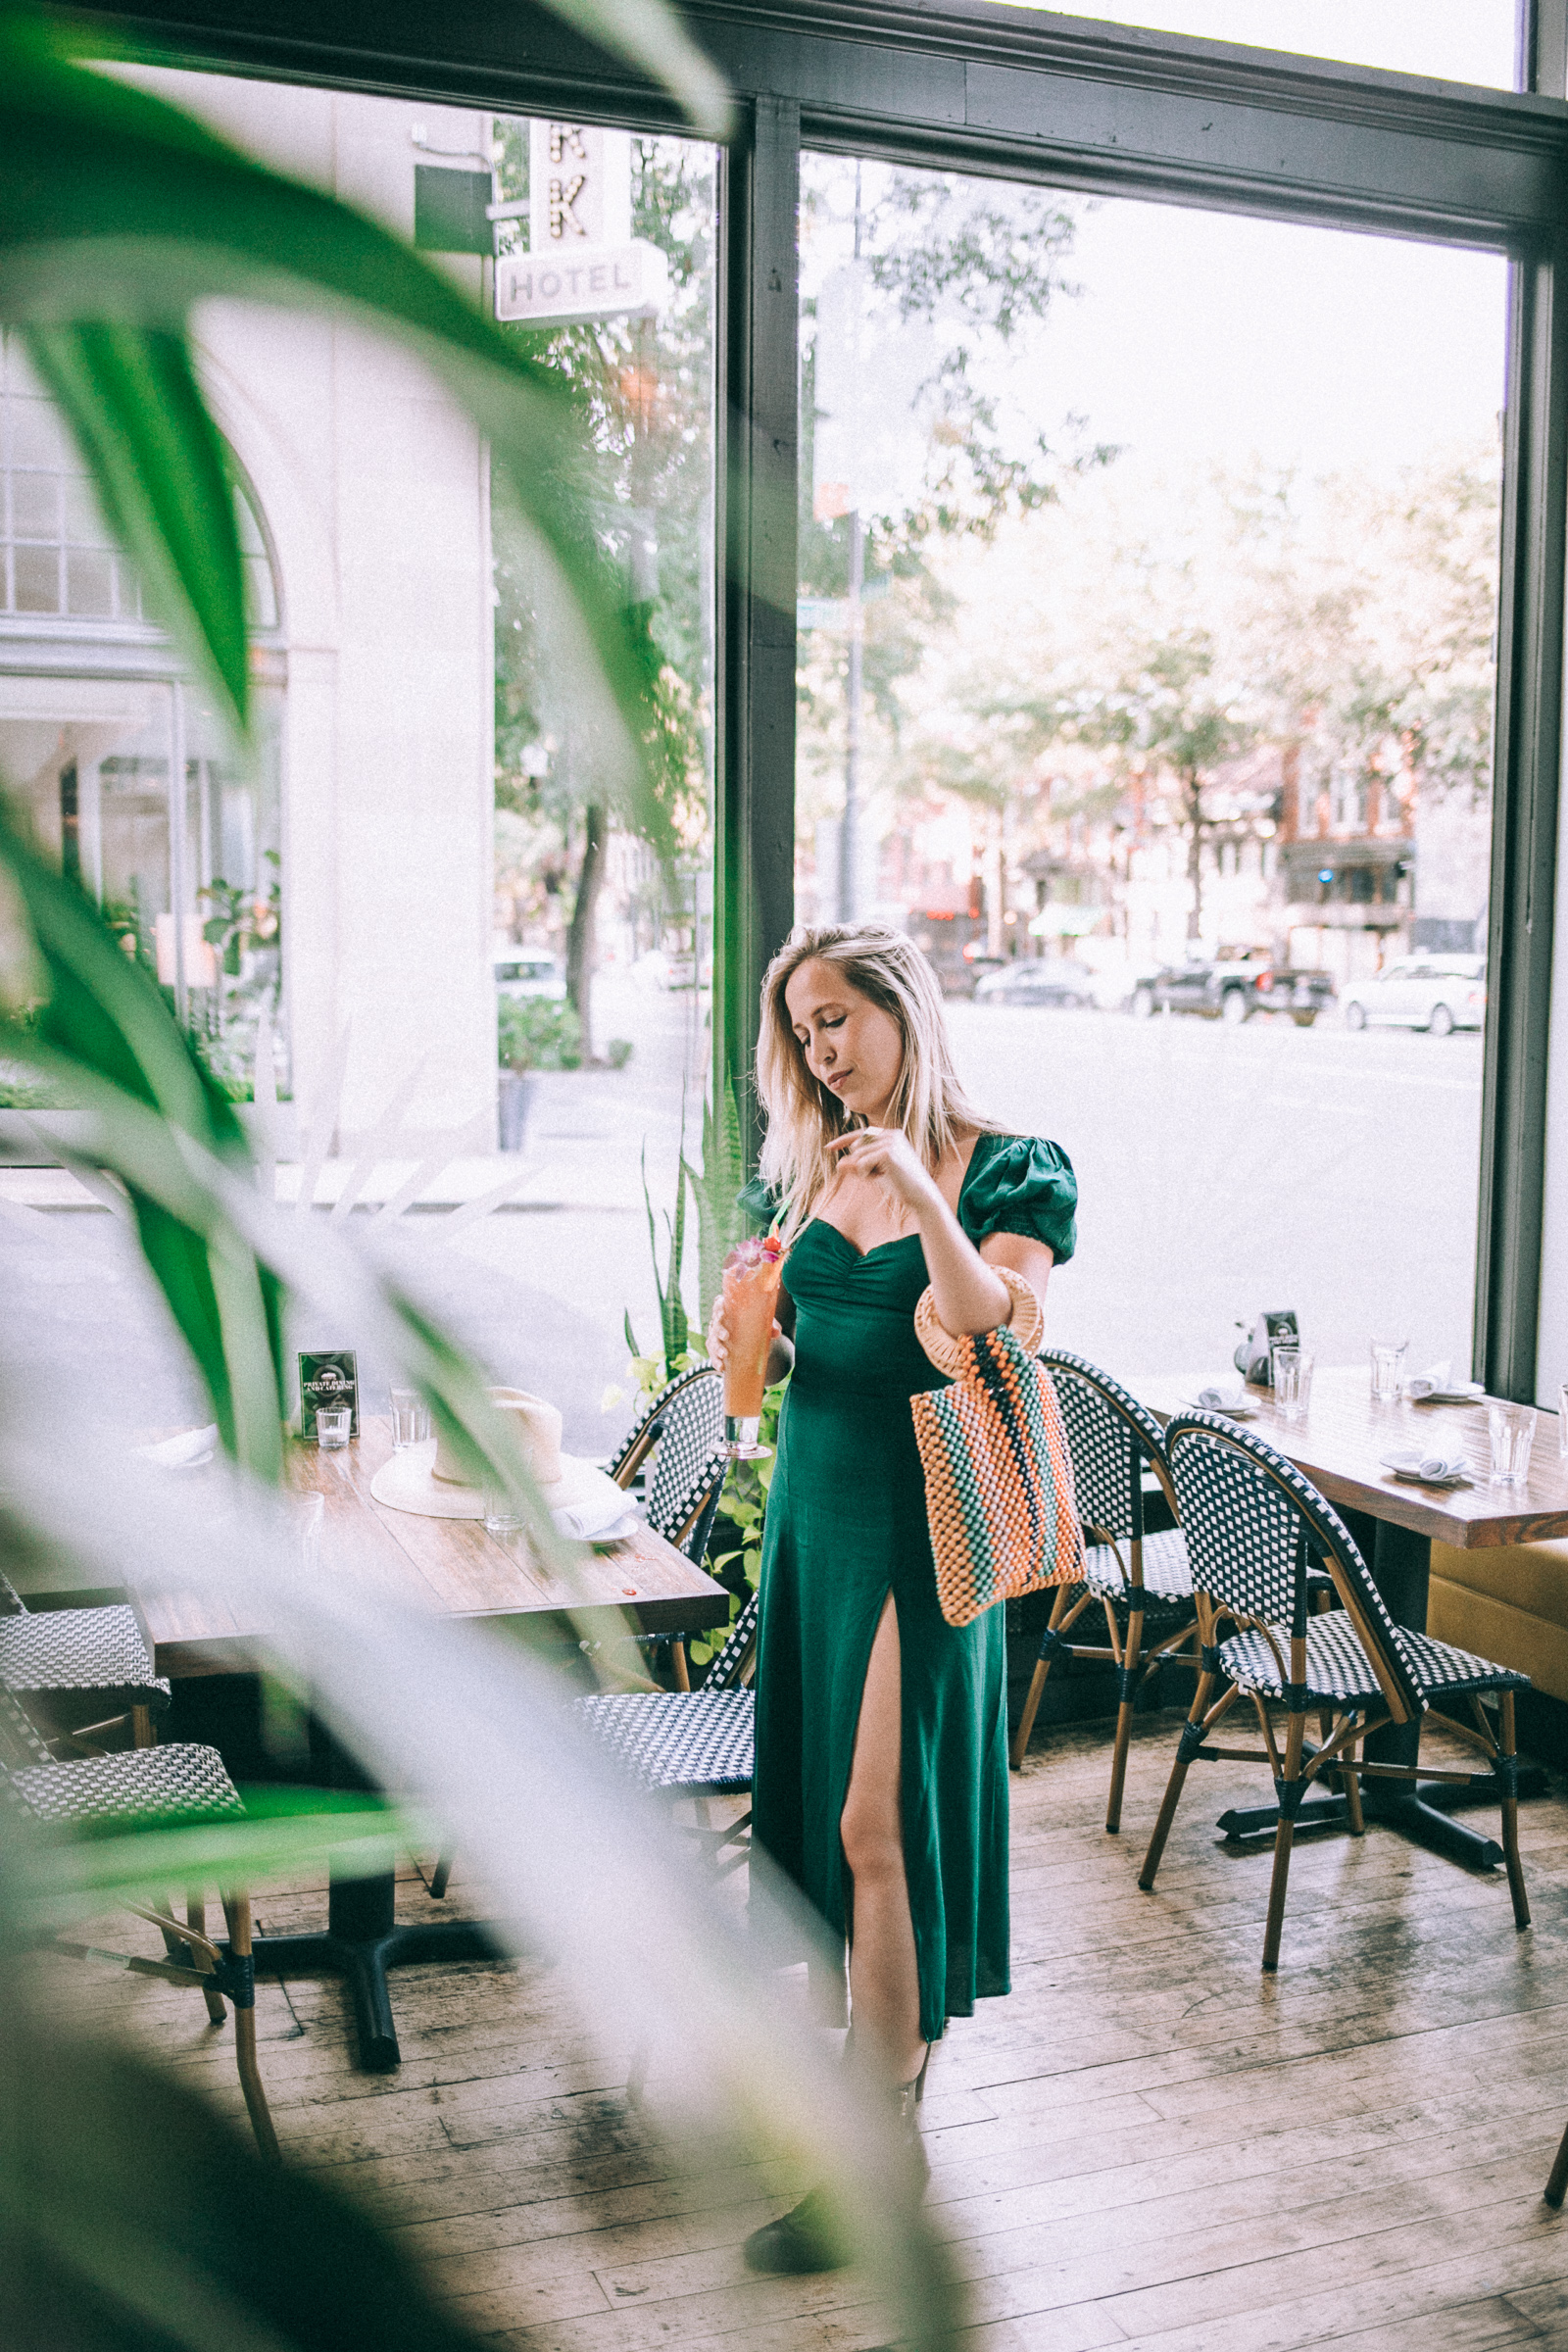 styling outfits for eating out | reformation dress, j crew boots, beaded tote